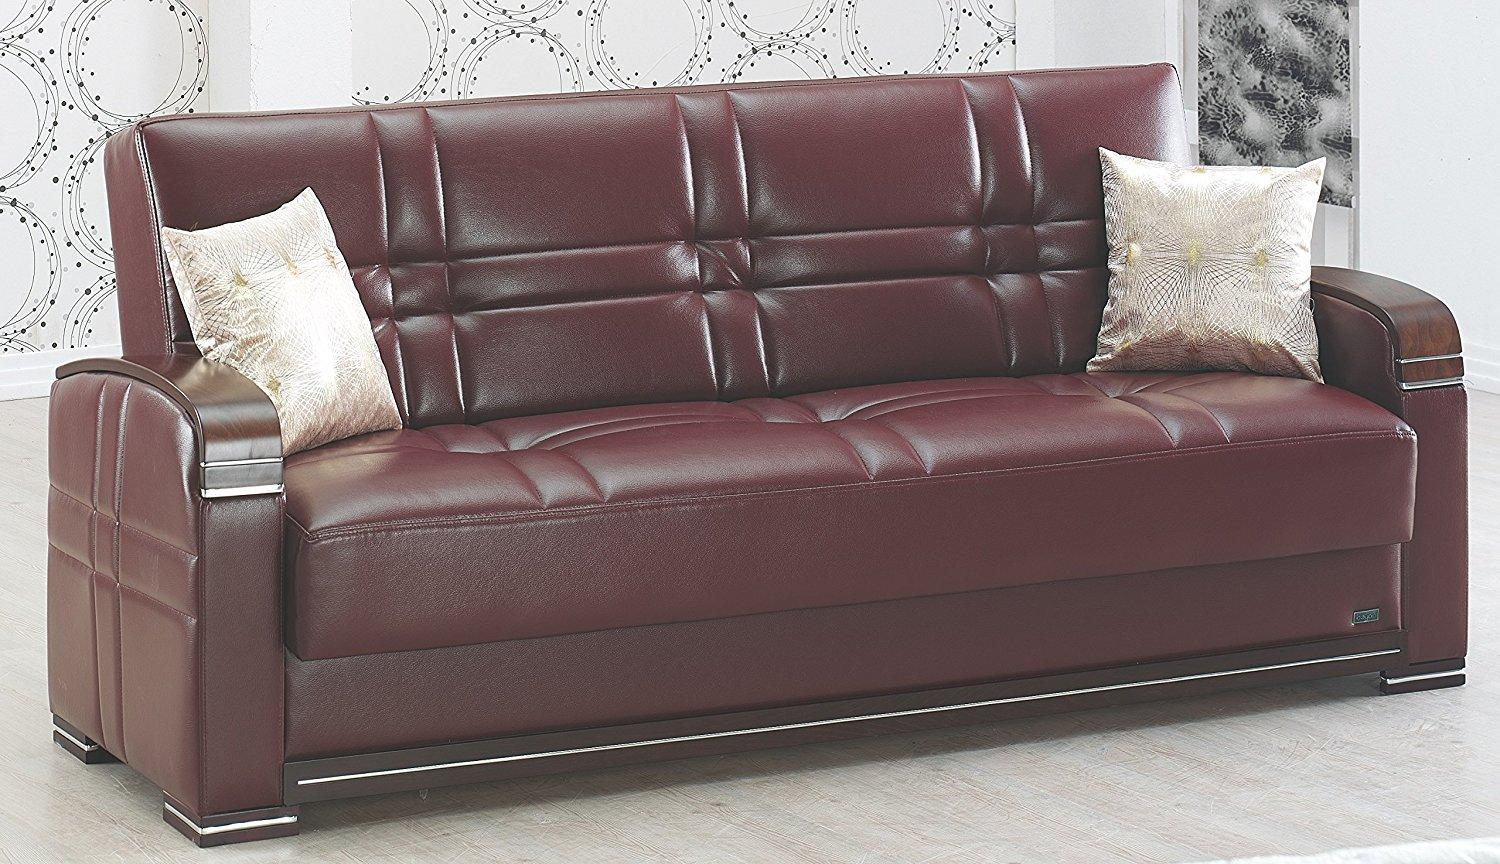 Convertible Sofa Bed With